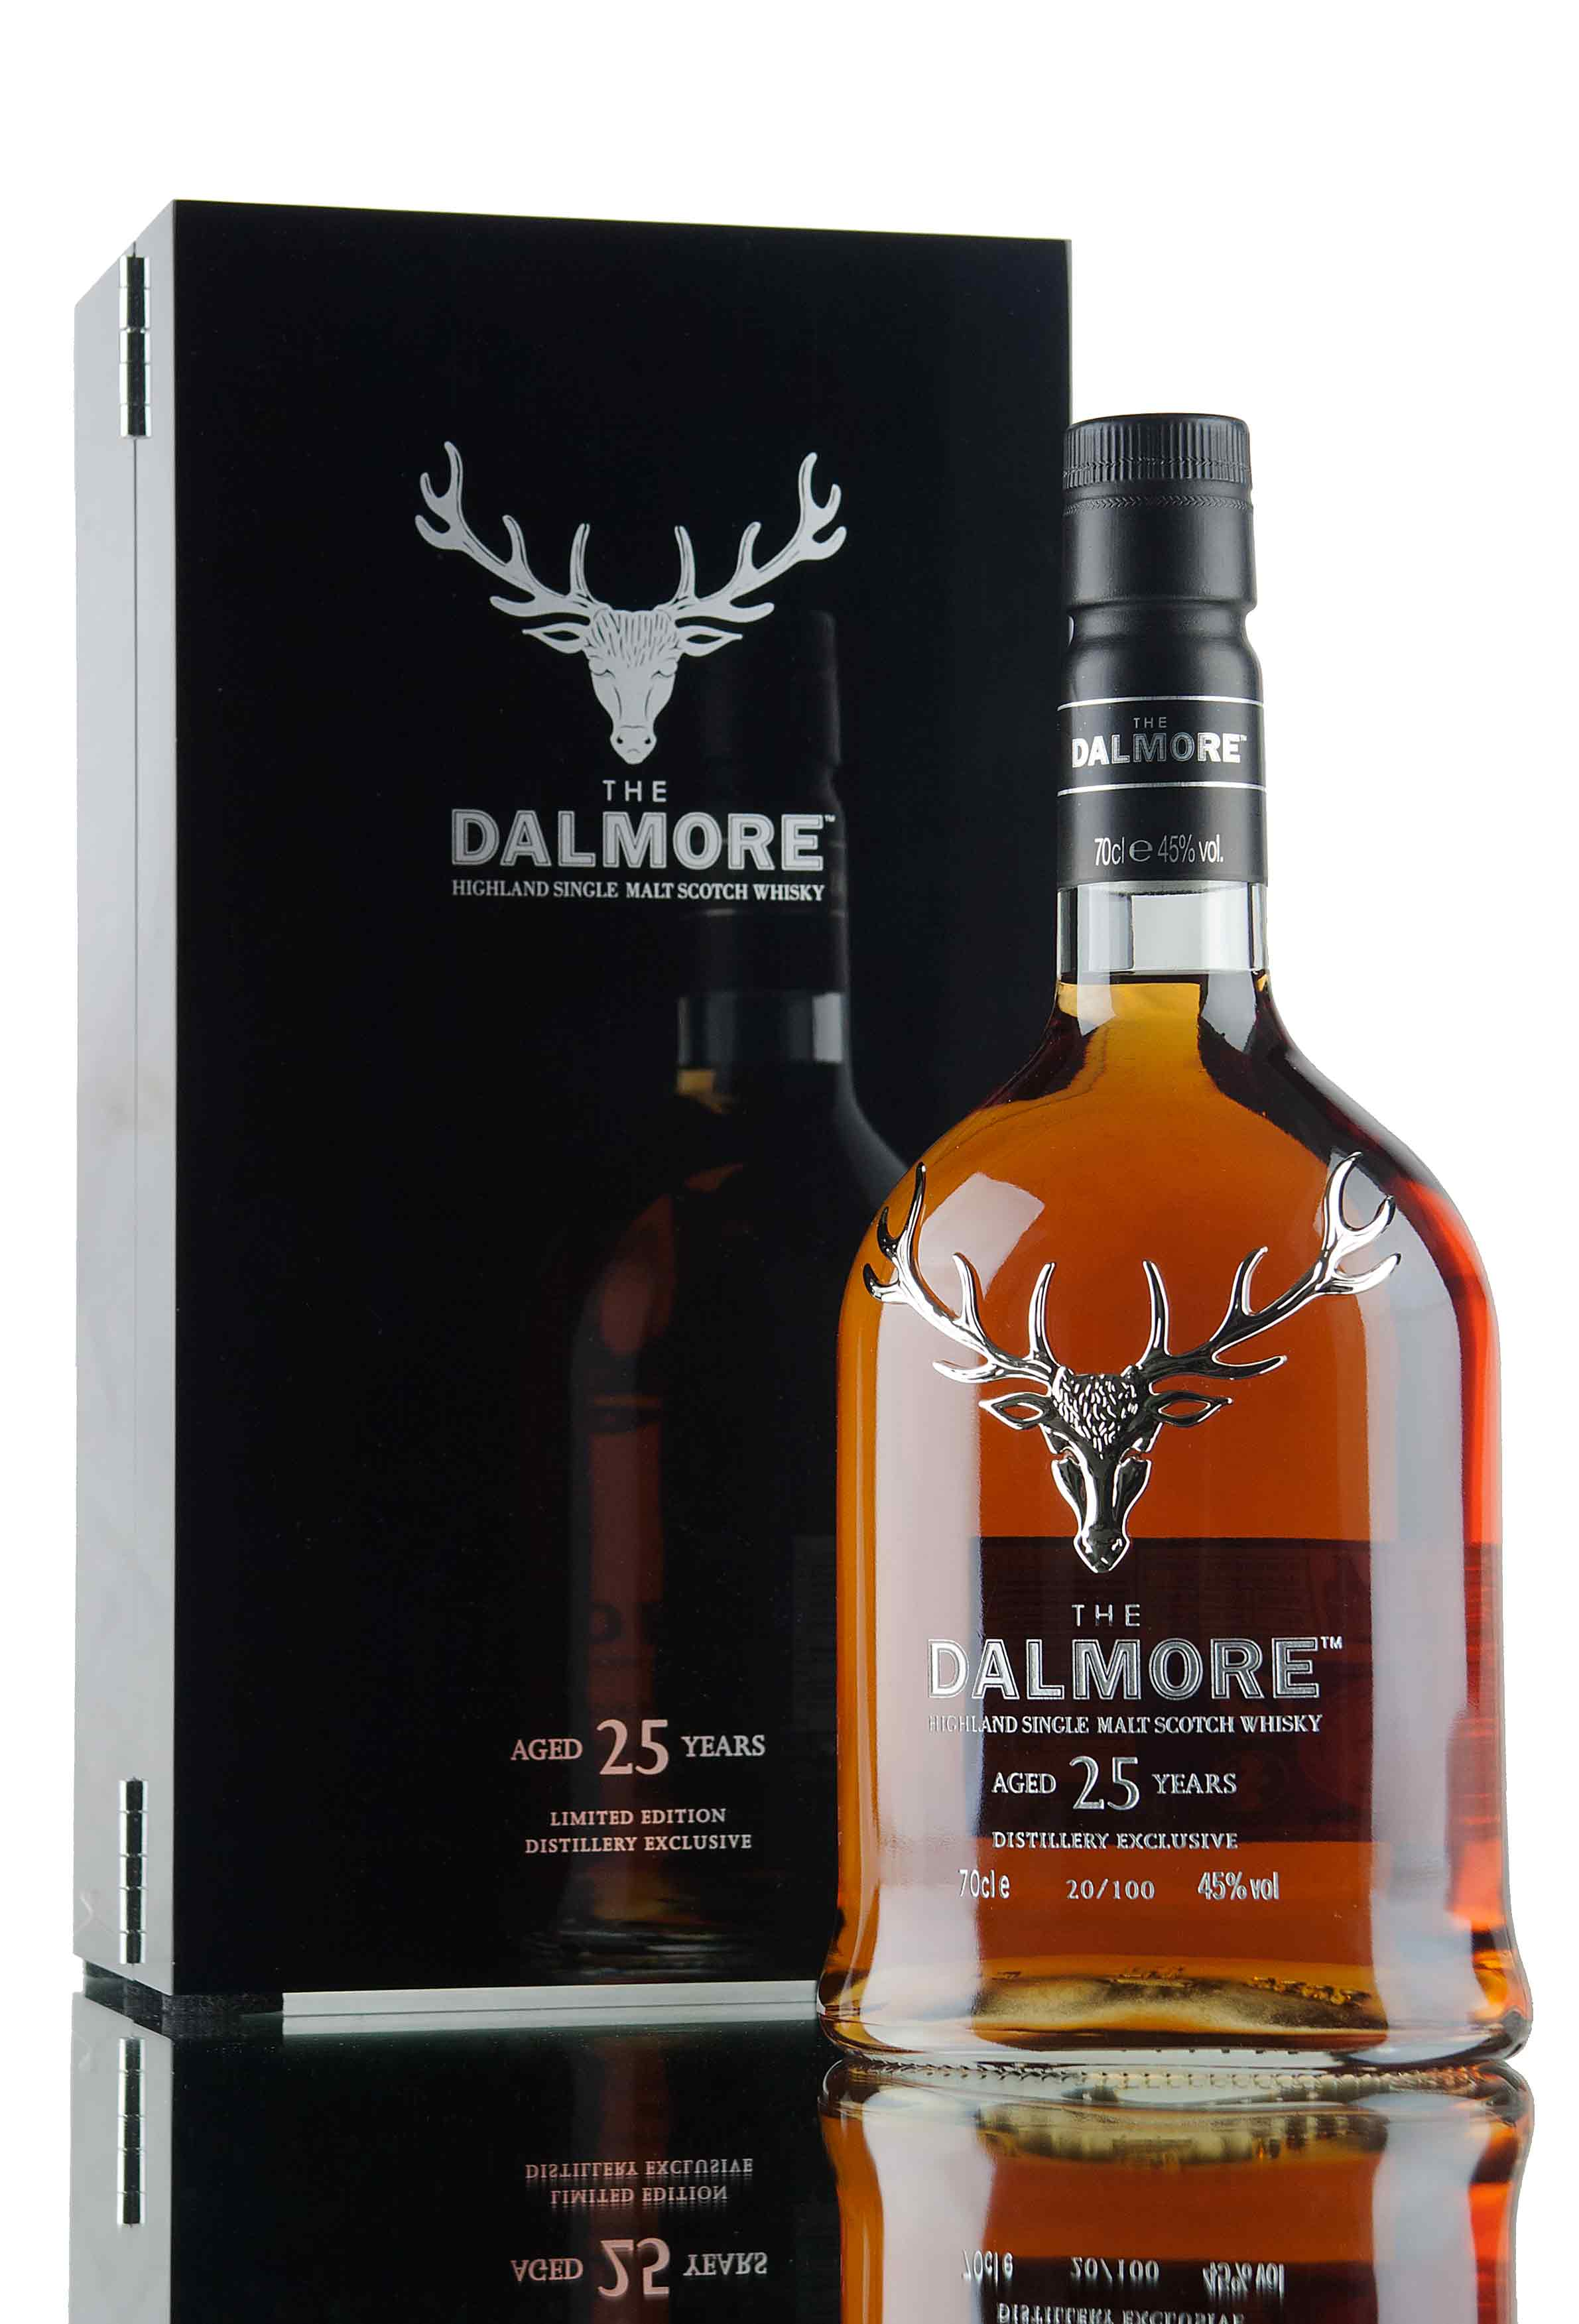 Dalmore 25 Year Old Distillery Exclusive